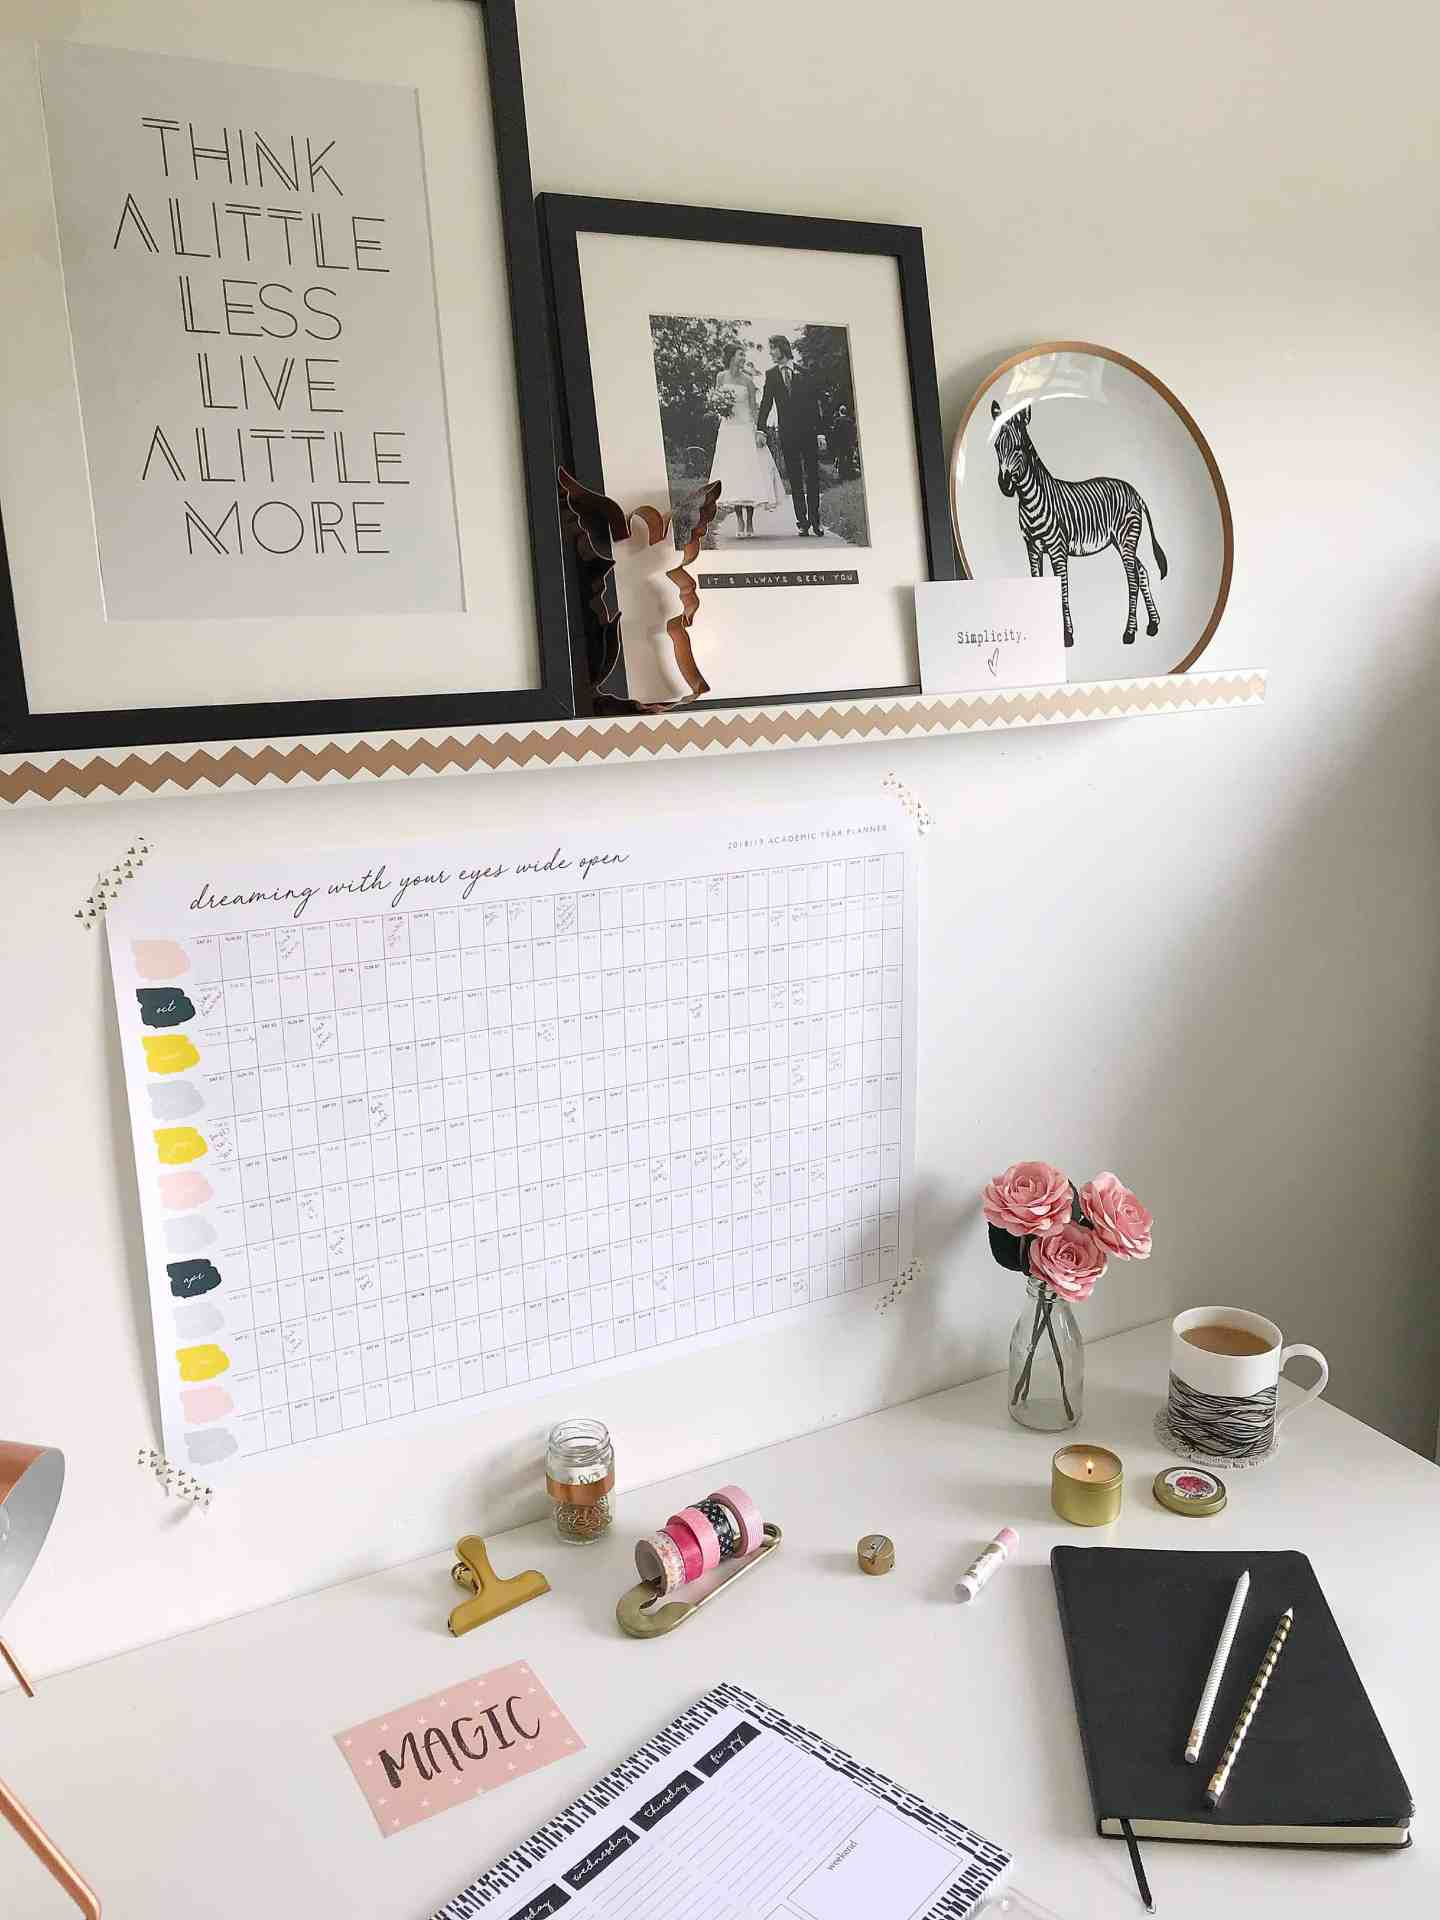 White desk with wall planner, notepooks and black and white pictures